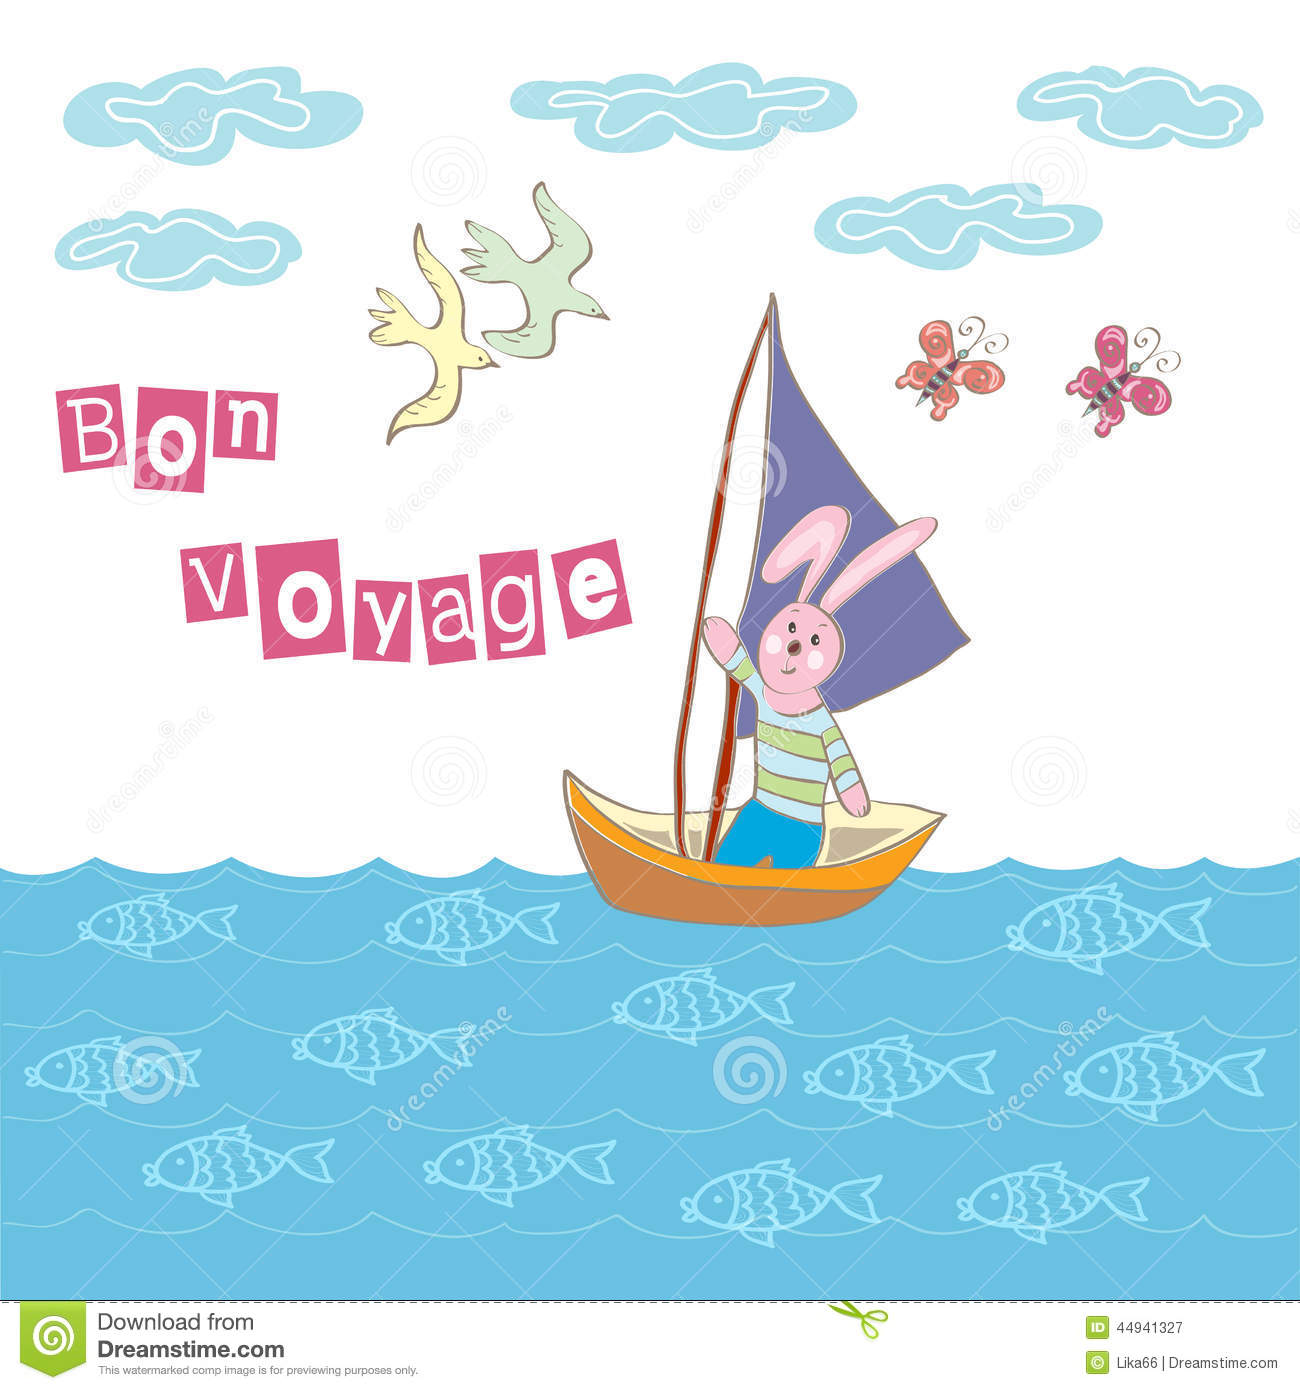 Bon Voyage Greeting Stock Vector Image 44941327